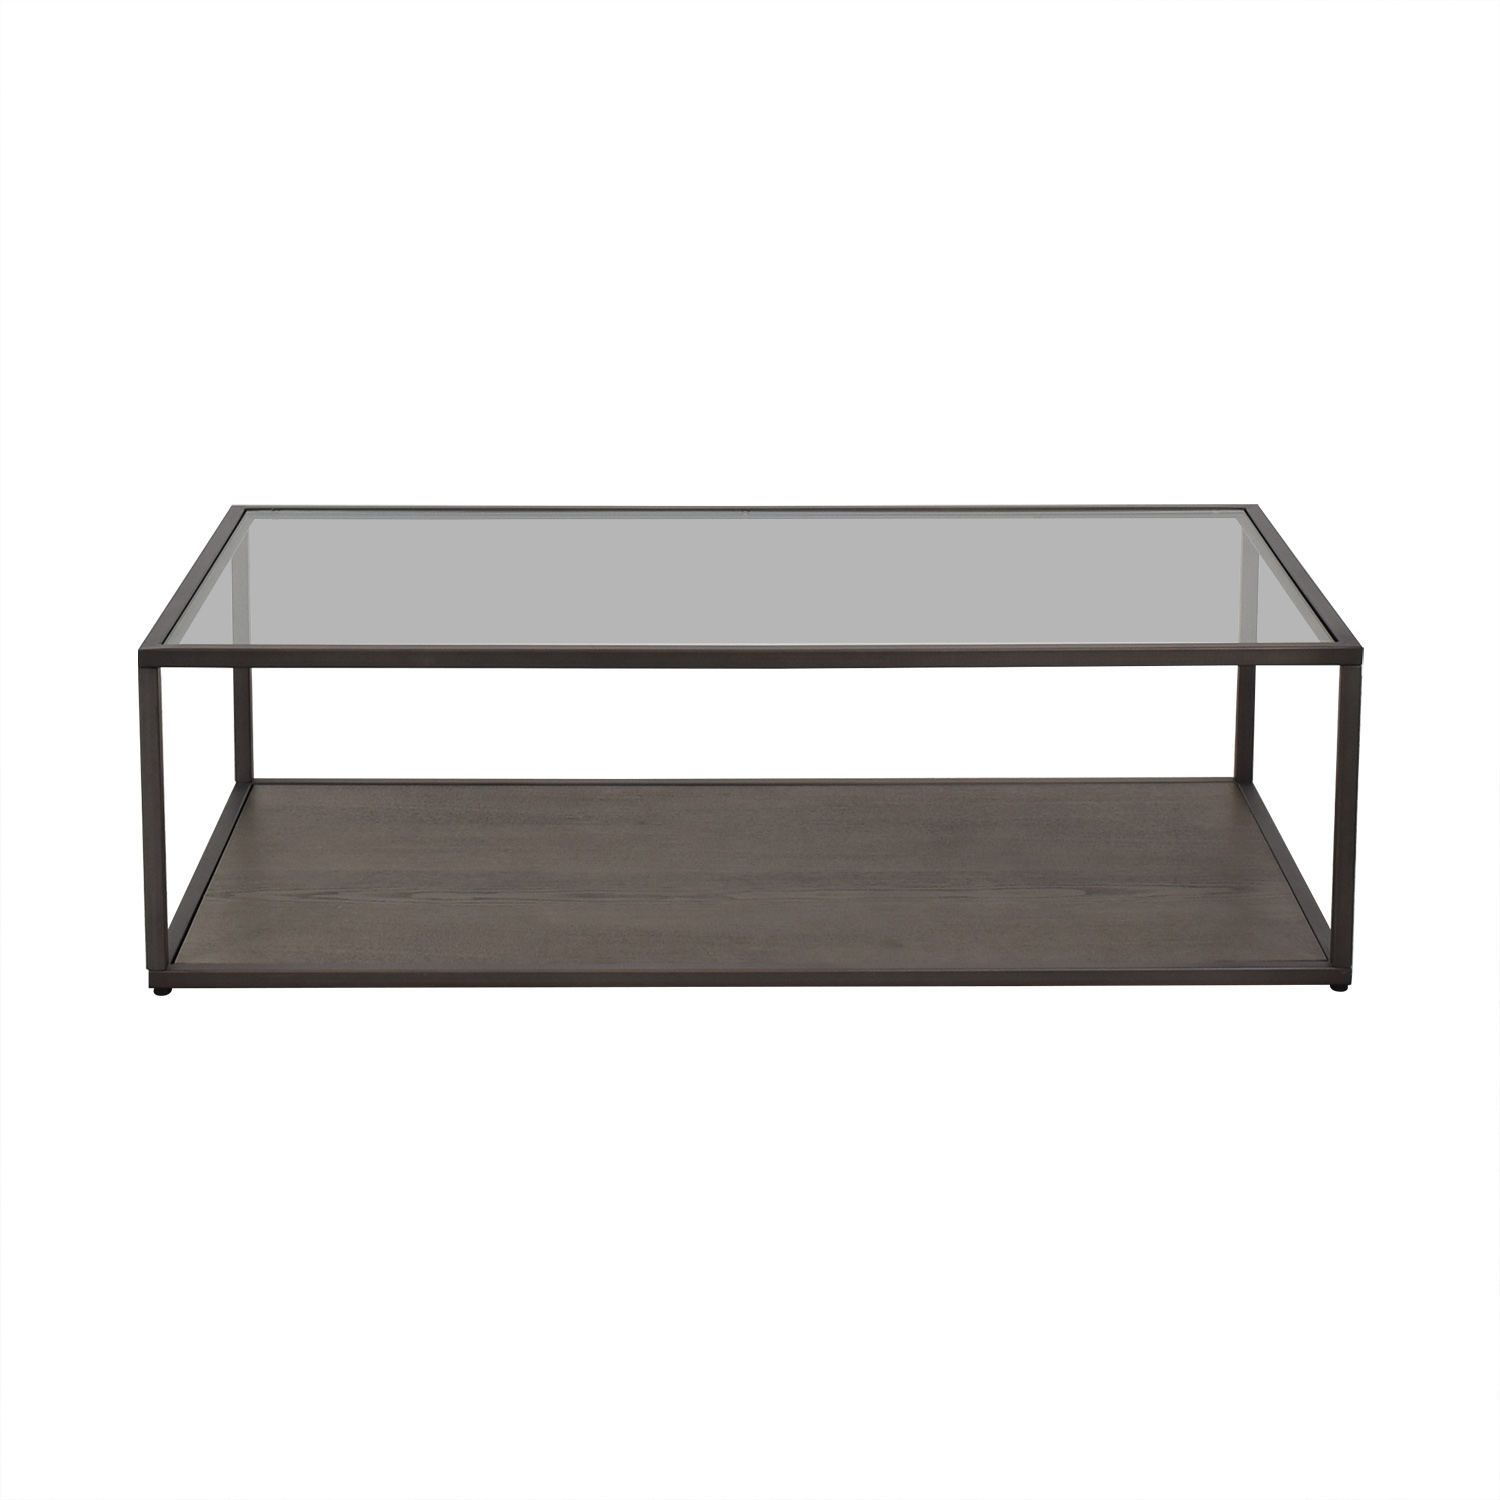 Crate & Barrel Crate & Barrel Switch Coffee Table nj